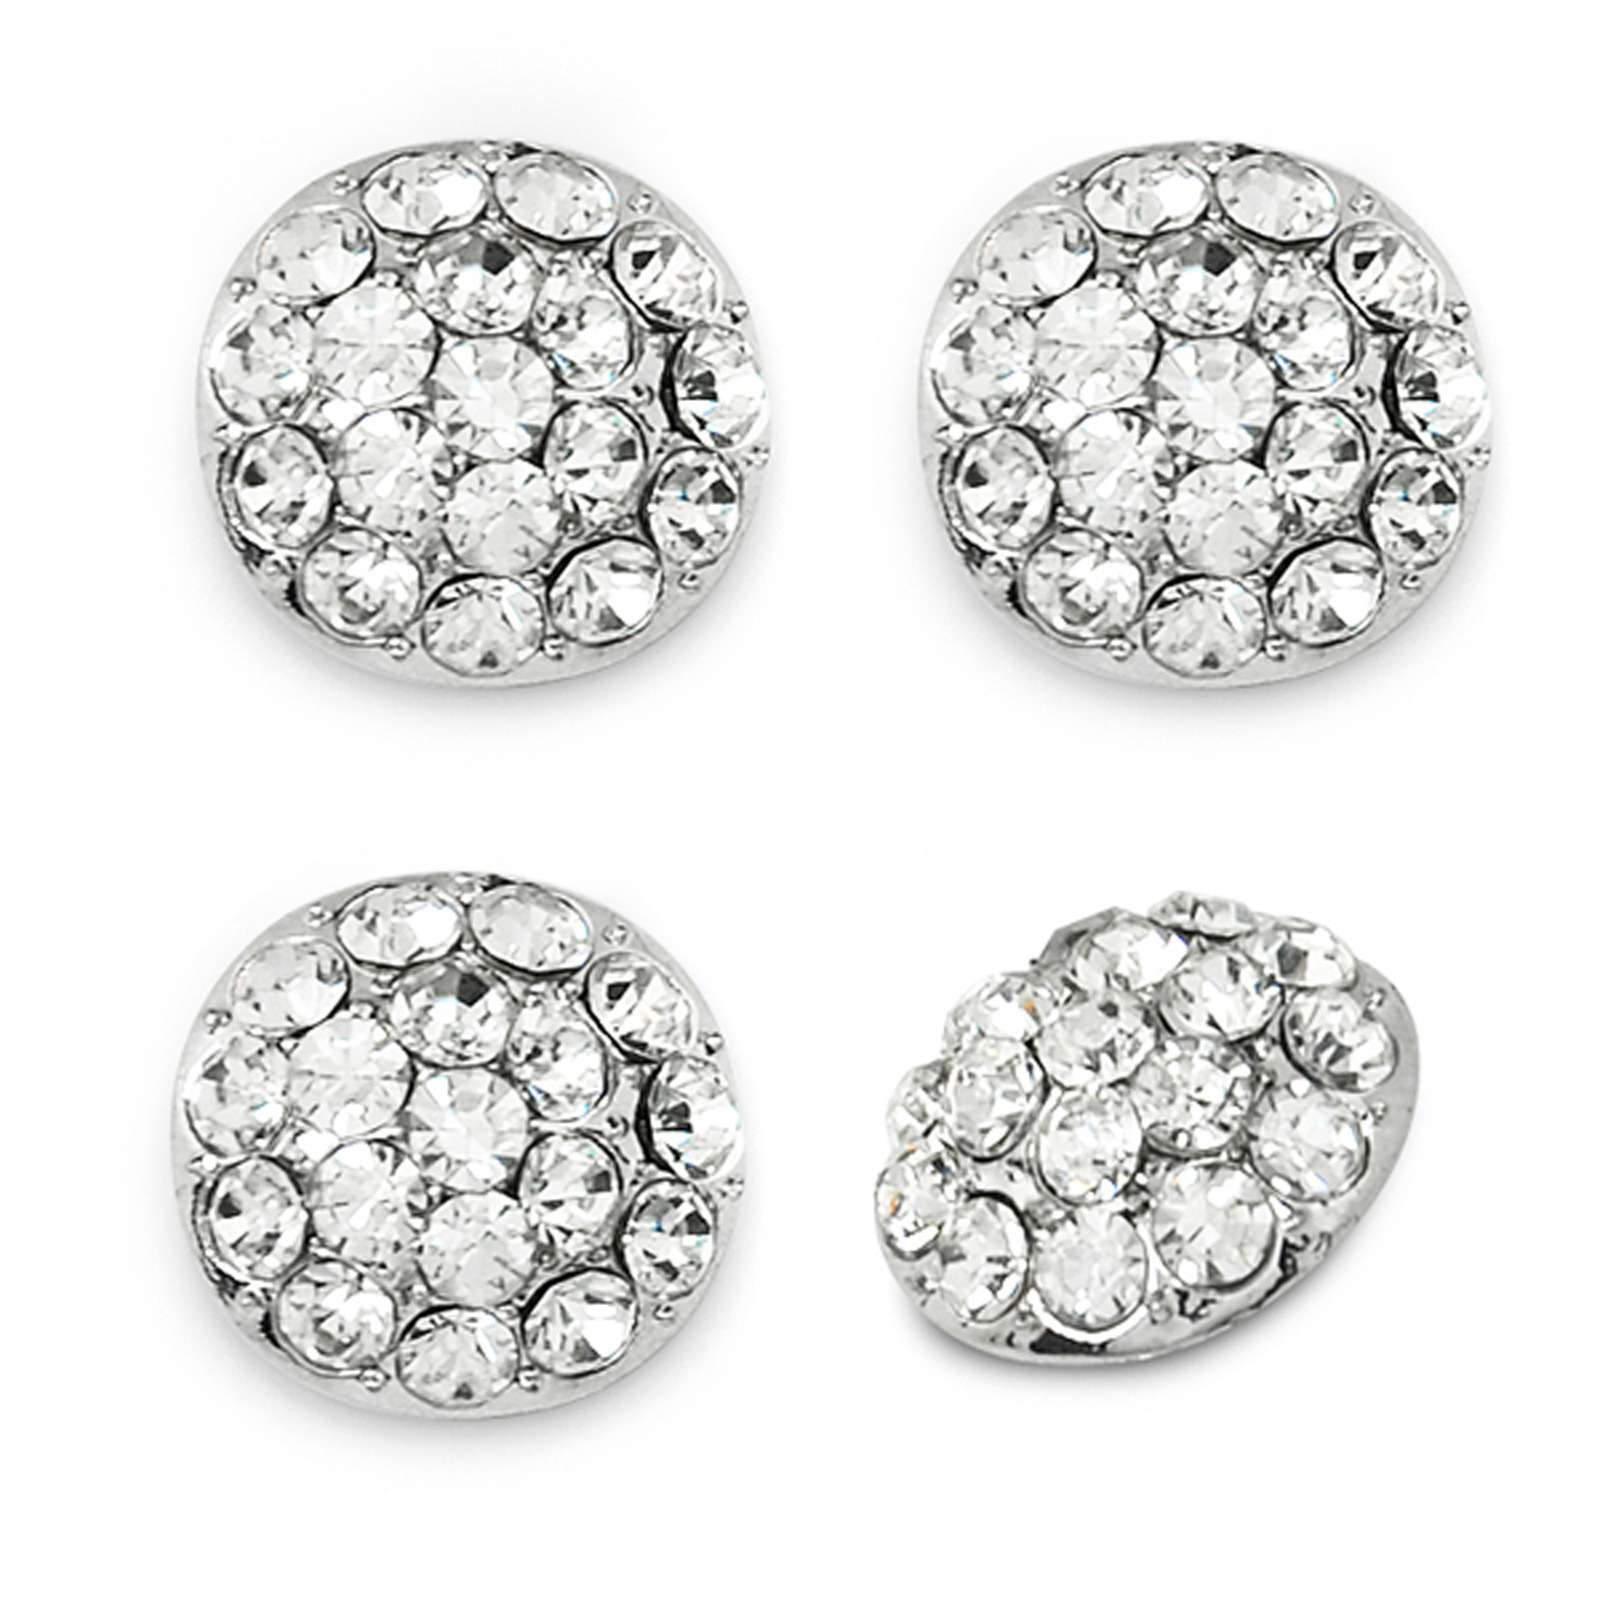 Image of 1.7cm Glass Rhinestone Button 4 PK